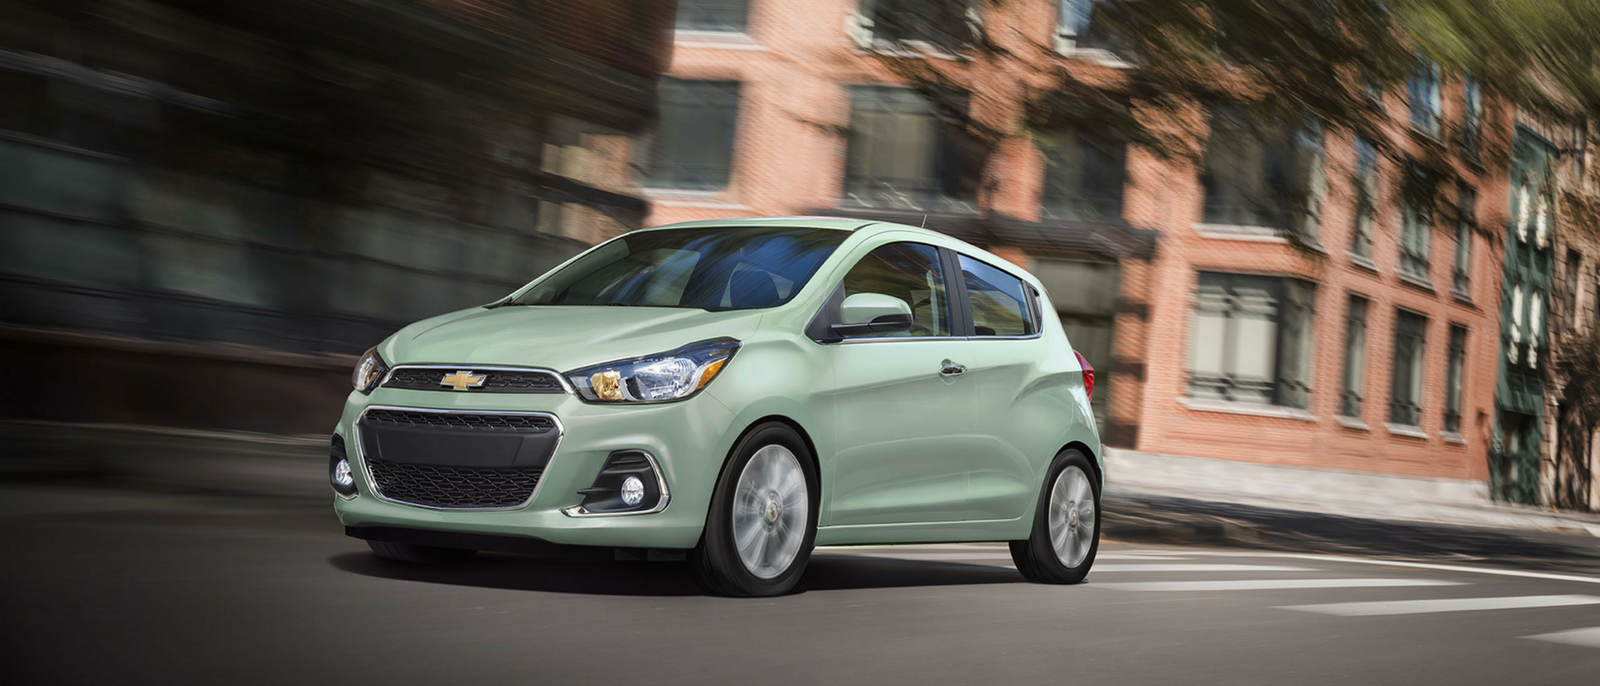 2017 Chevrolet Spark Info Price Lineup Safety Features